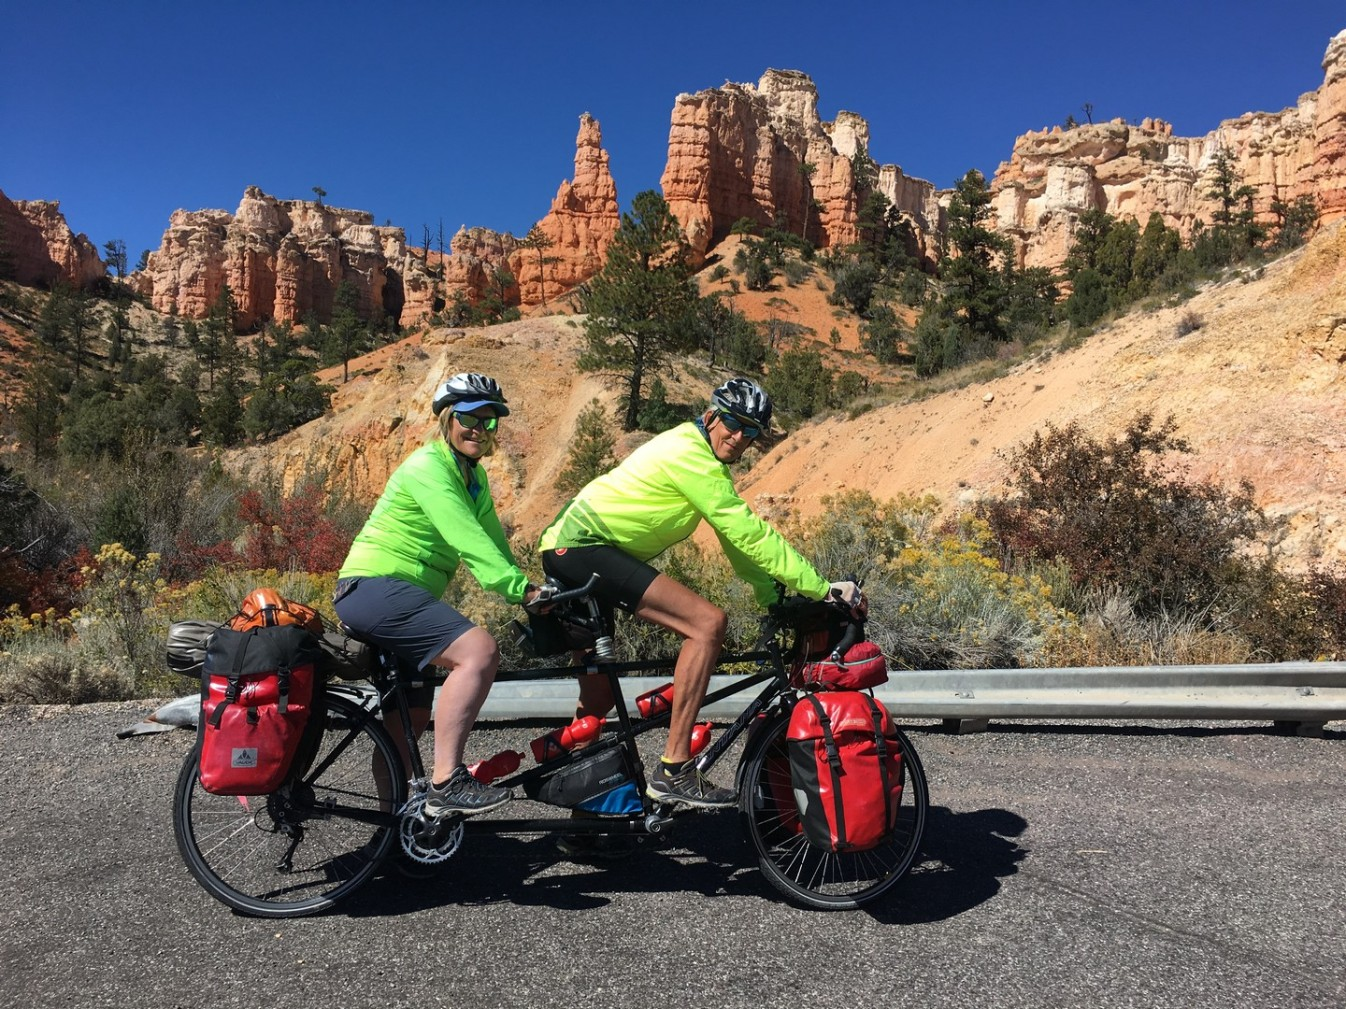 2017-10-06 Cannonville_Bryce Canyon-34